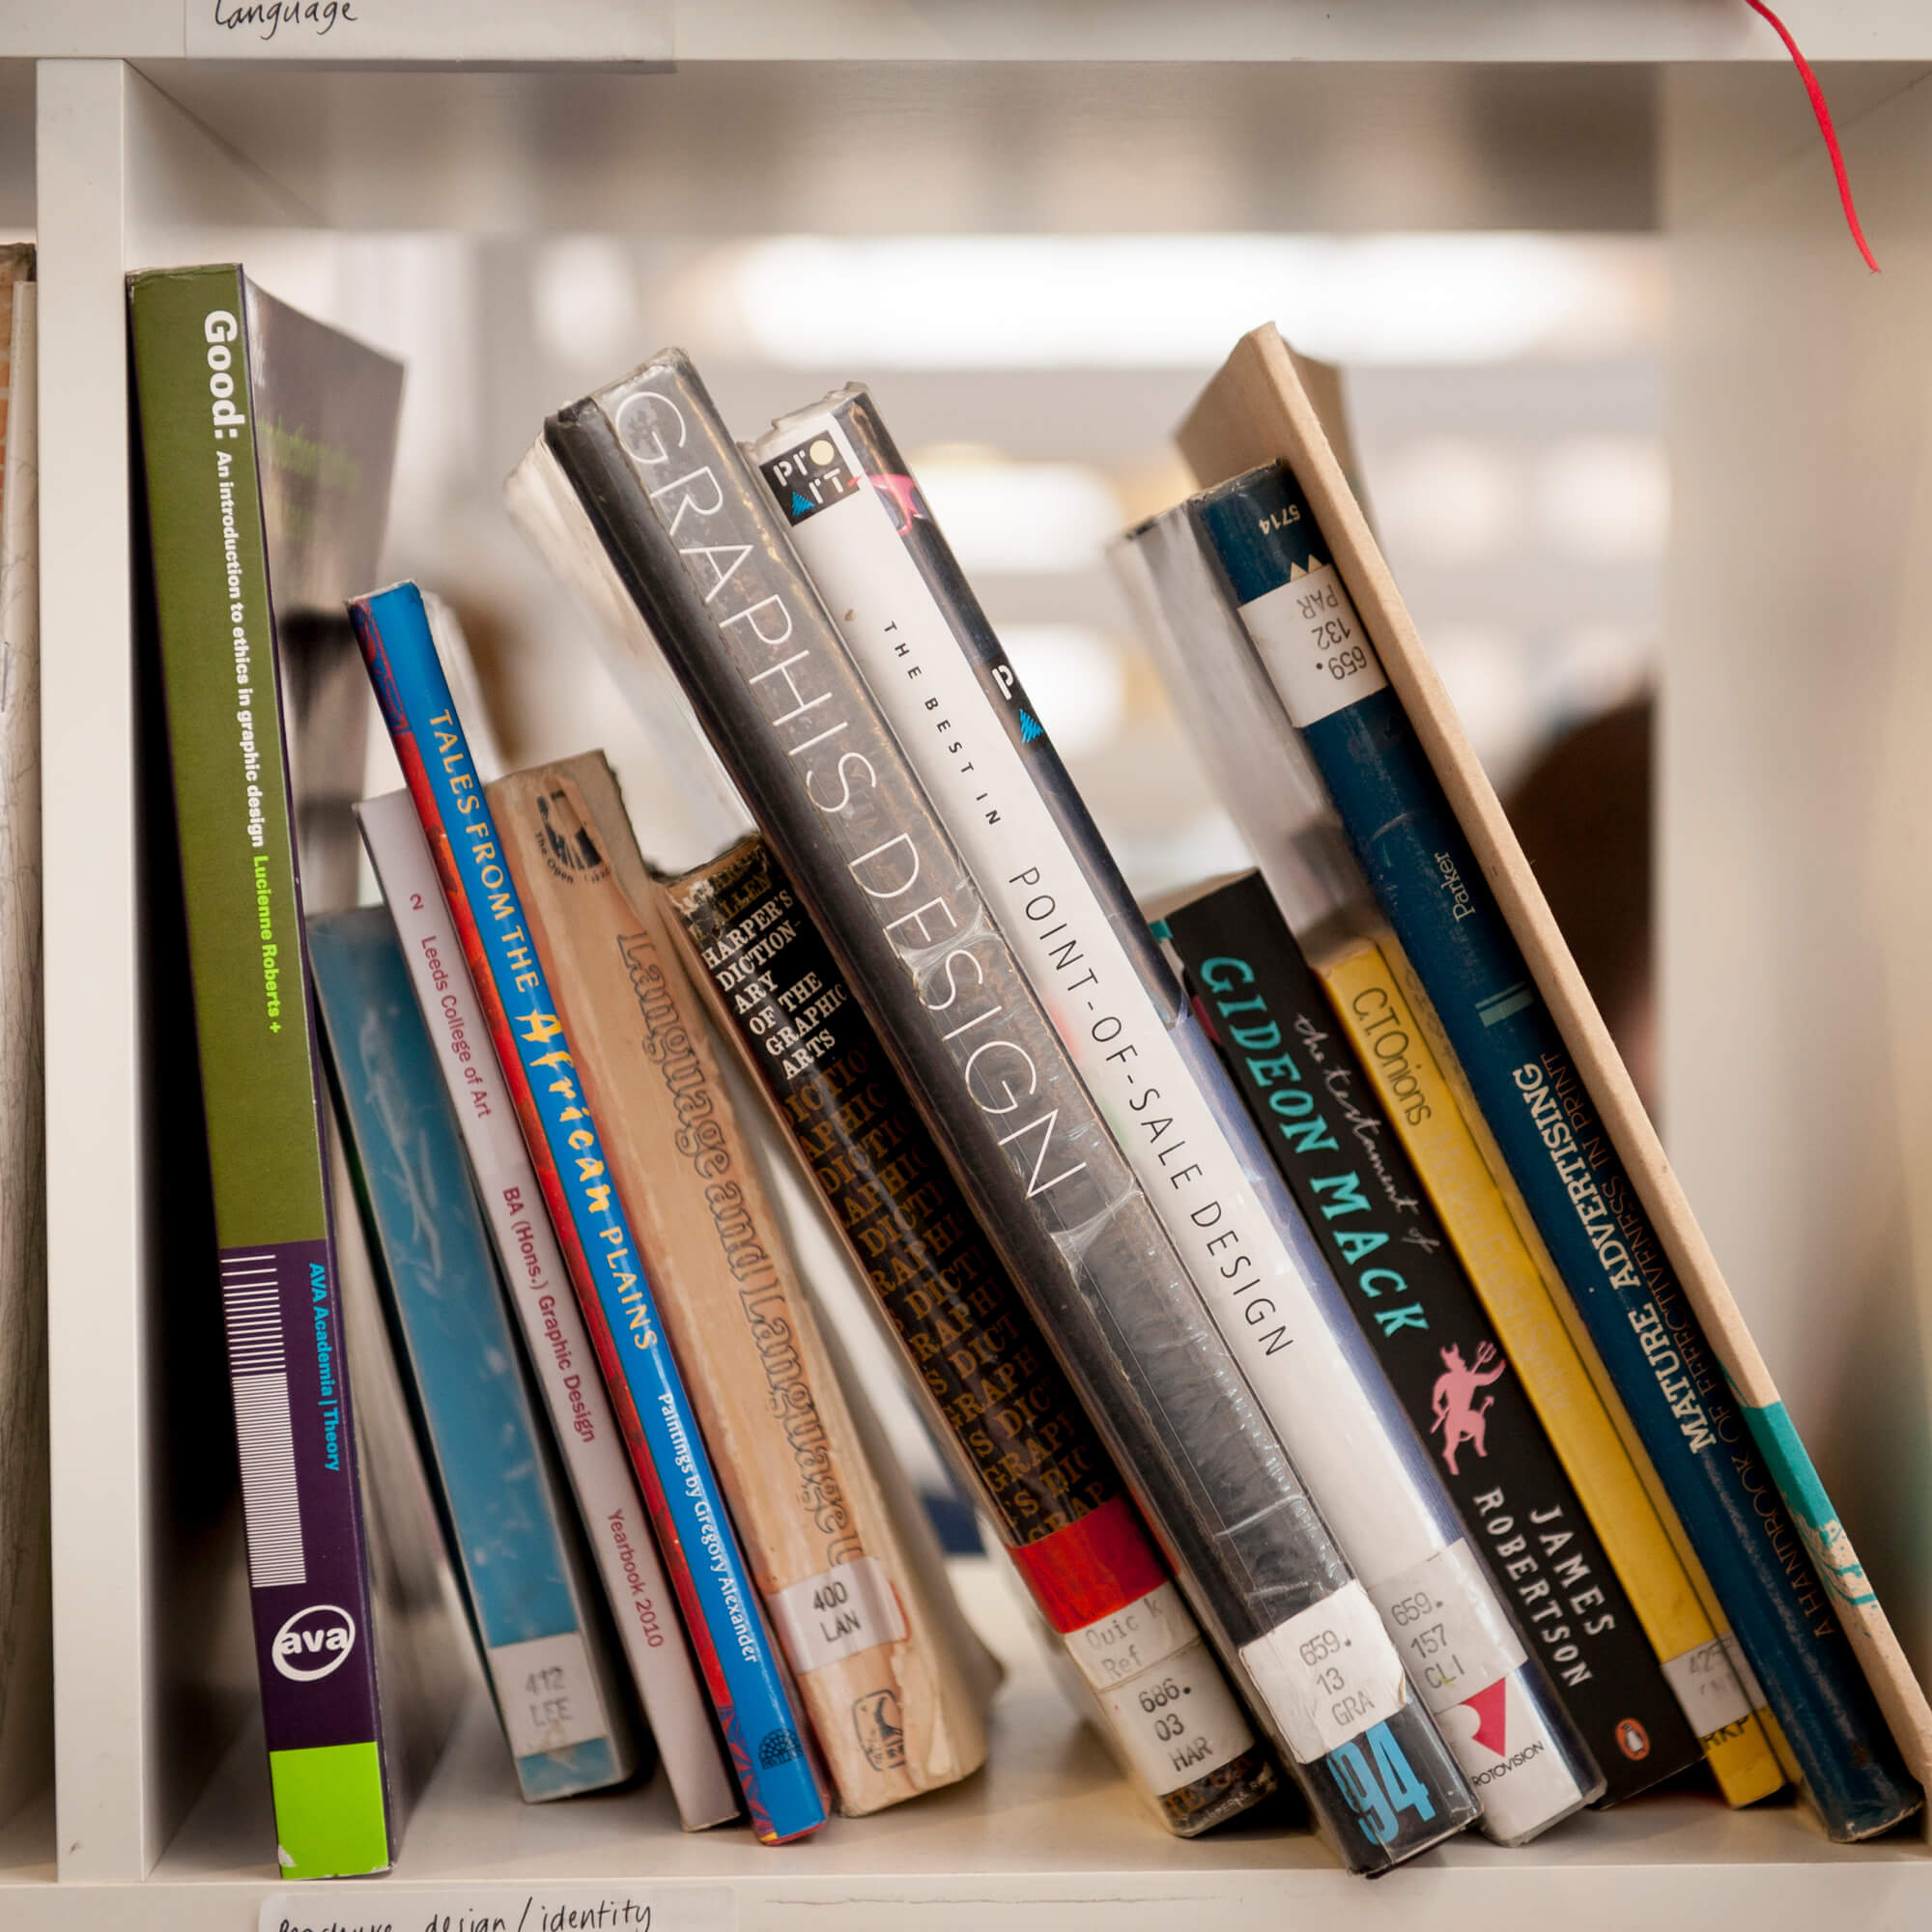 Selection of books on a shelve